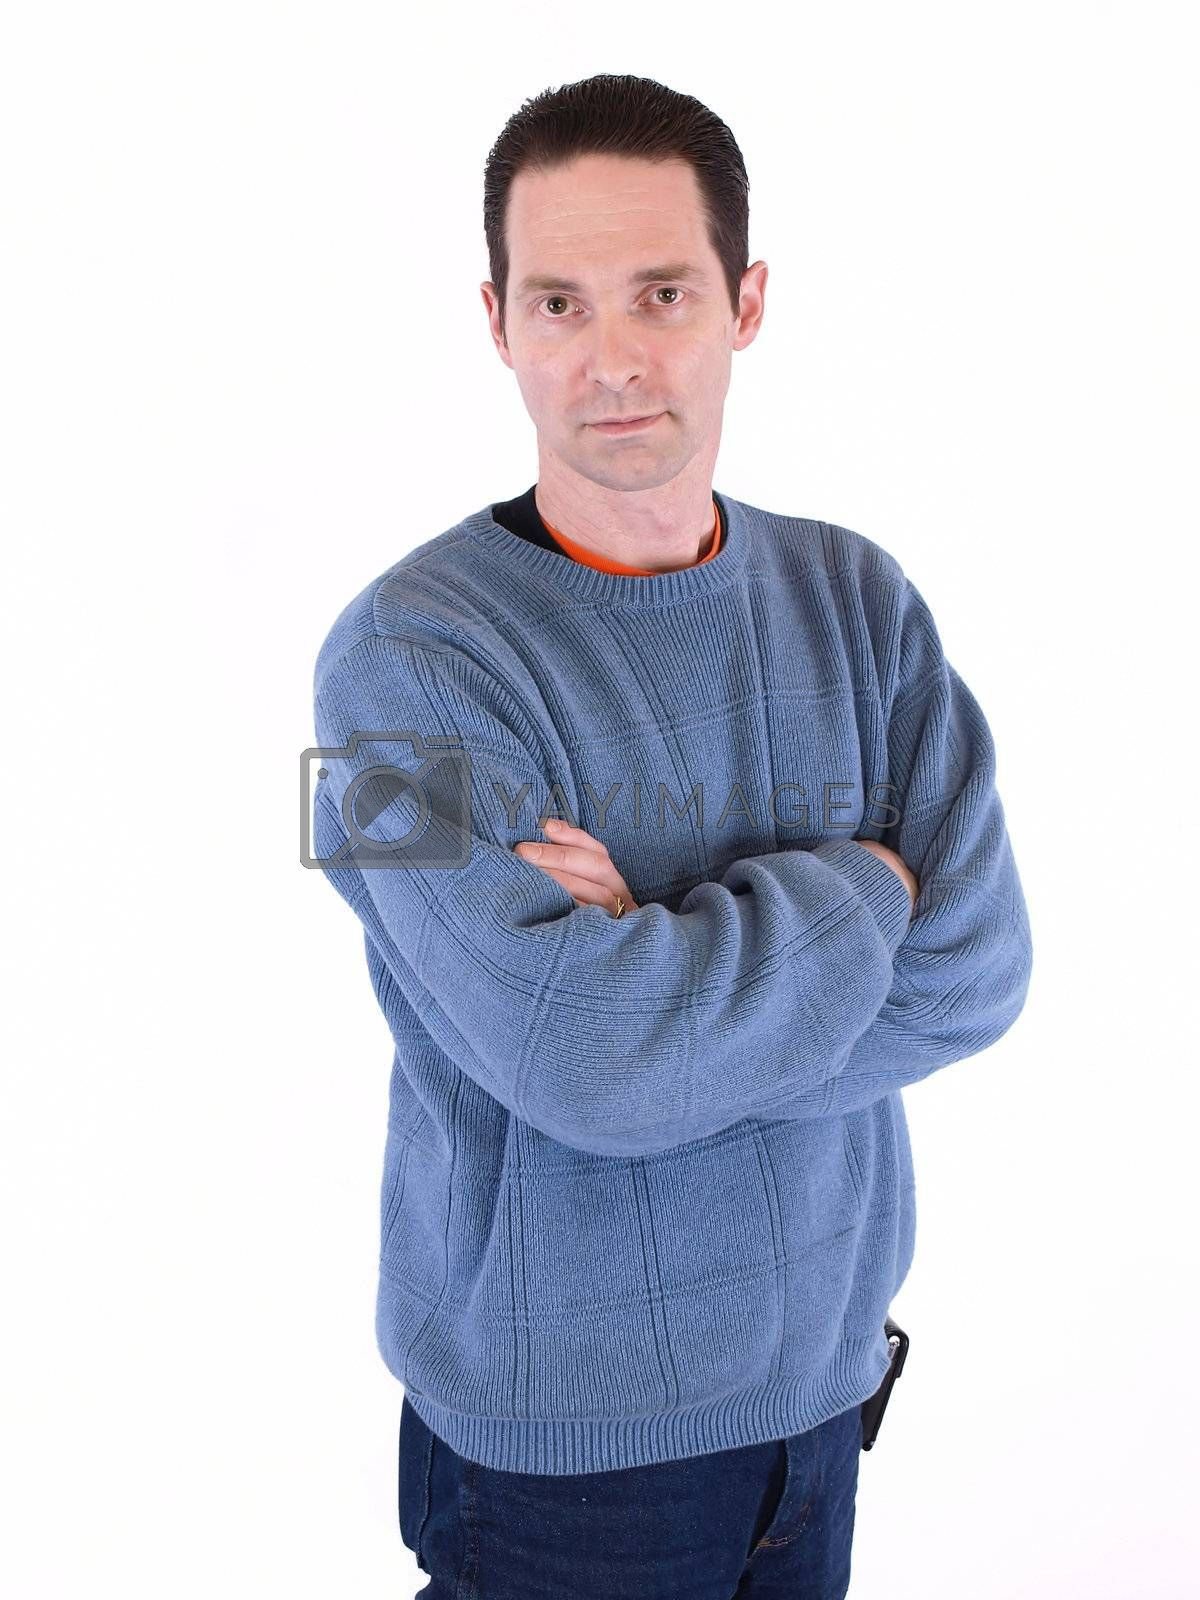 A man in a blue sweater folding his arms, isolated on a white background.